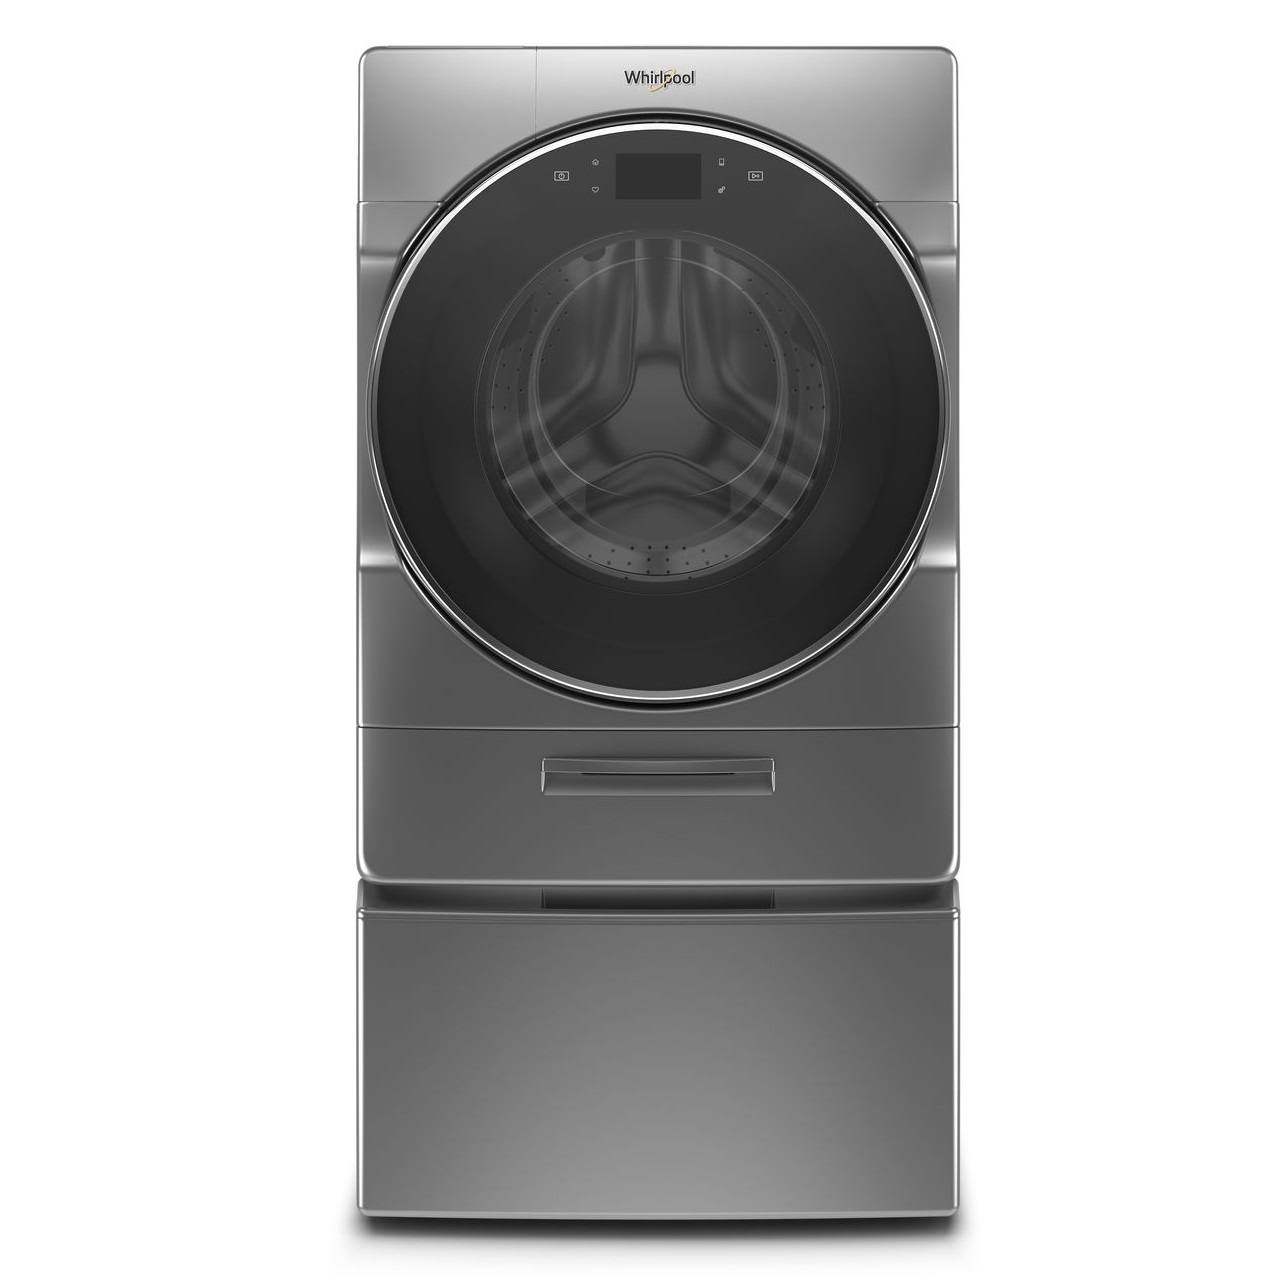 Whirlpool Smart All-in-One Washer & Dryer